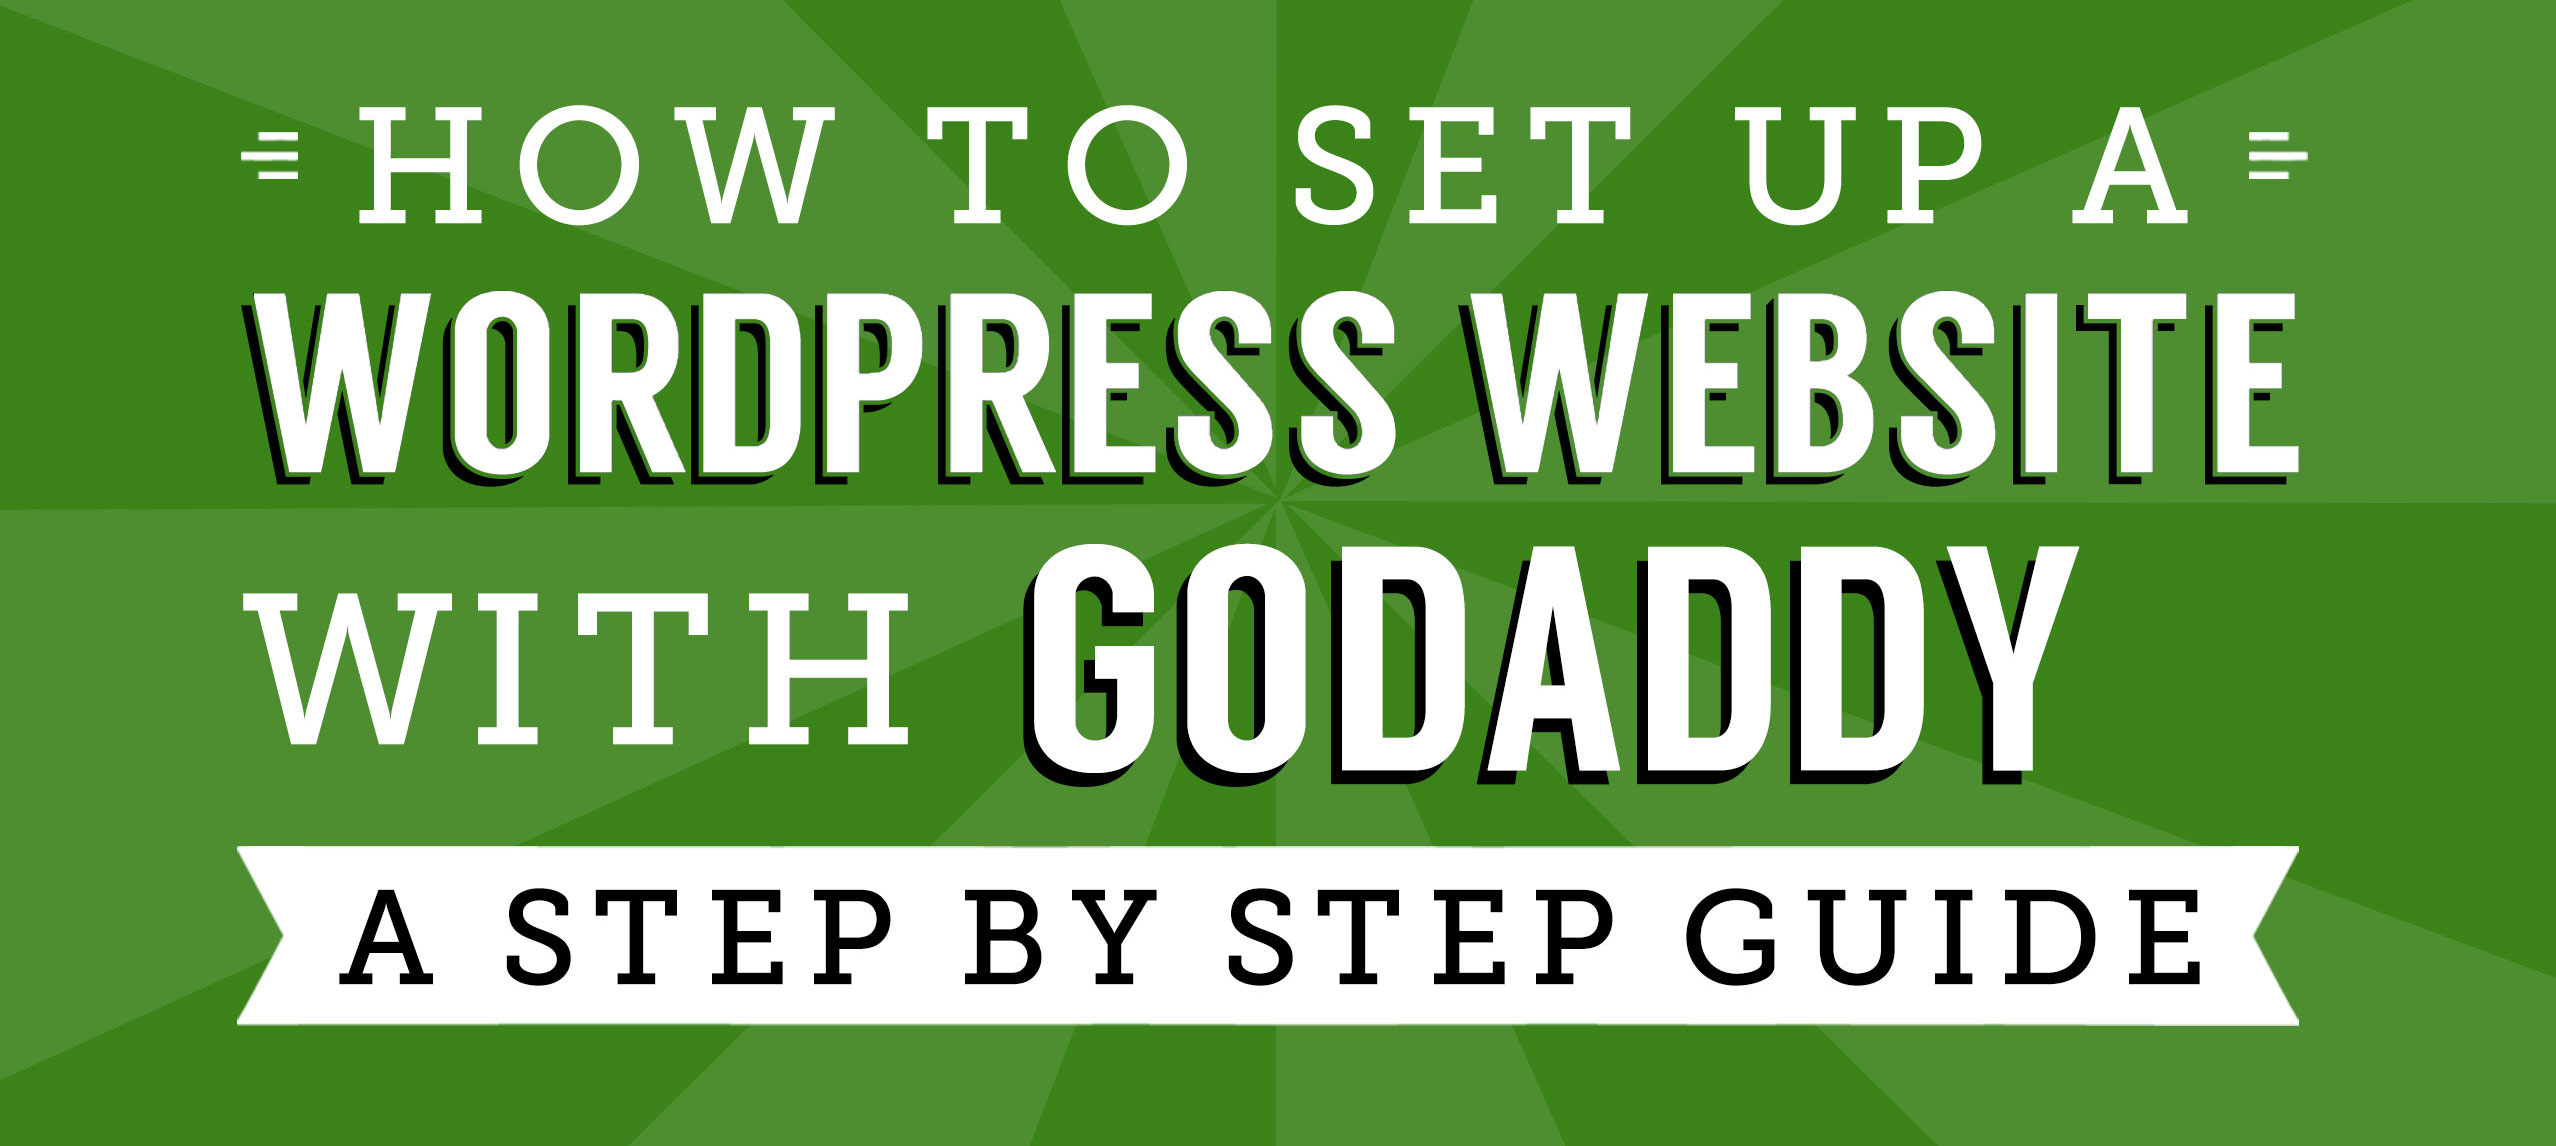 how-to-set-up-wordpress-godaddy